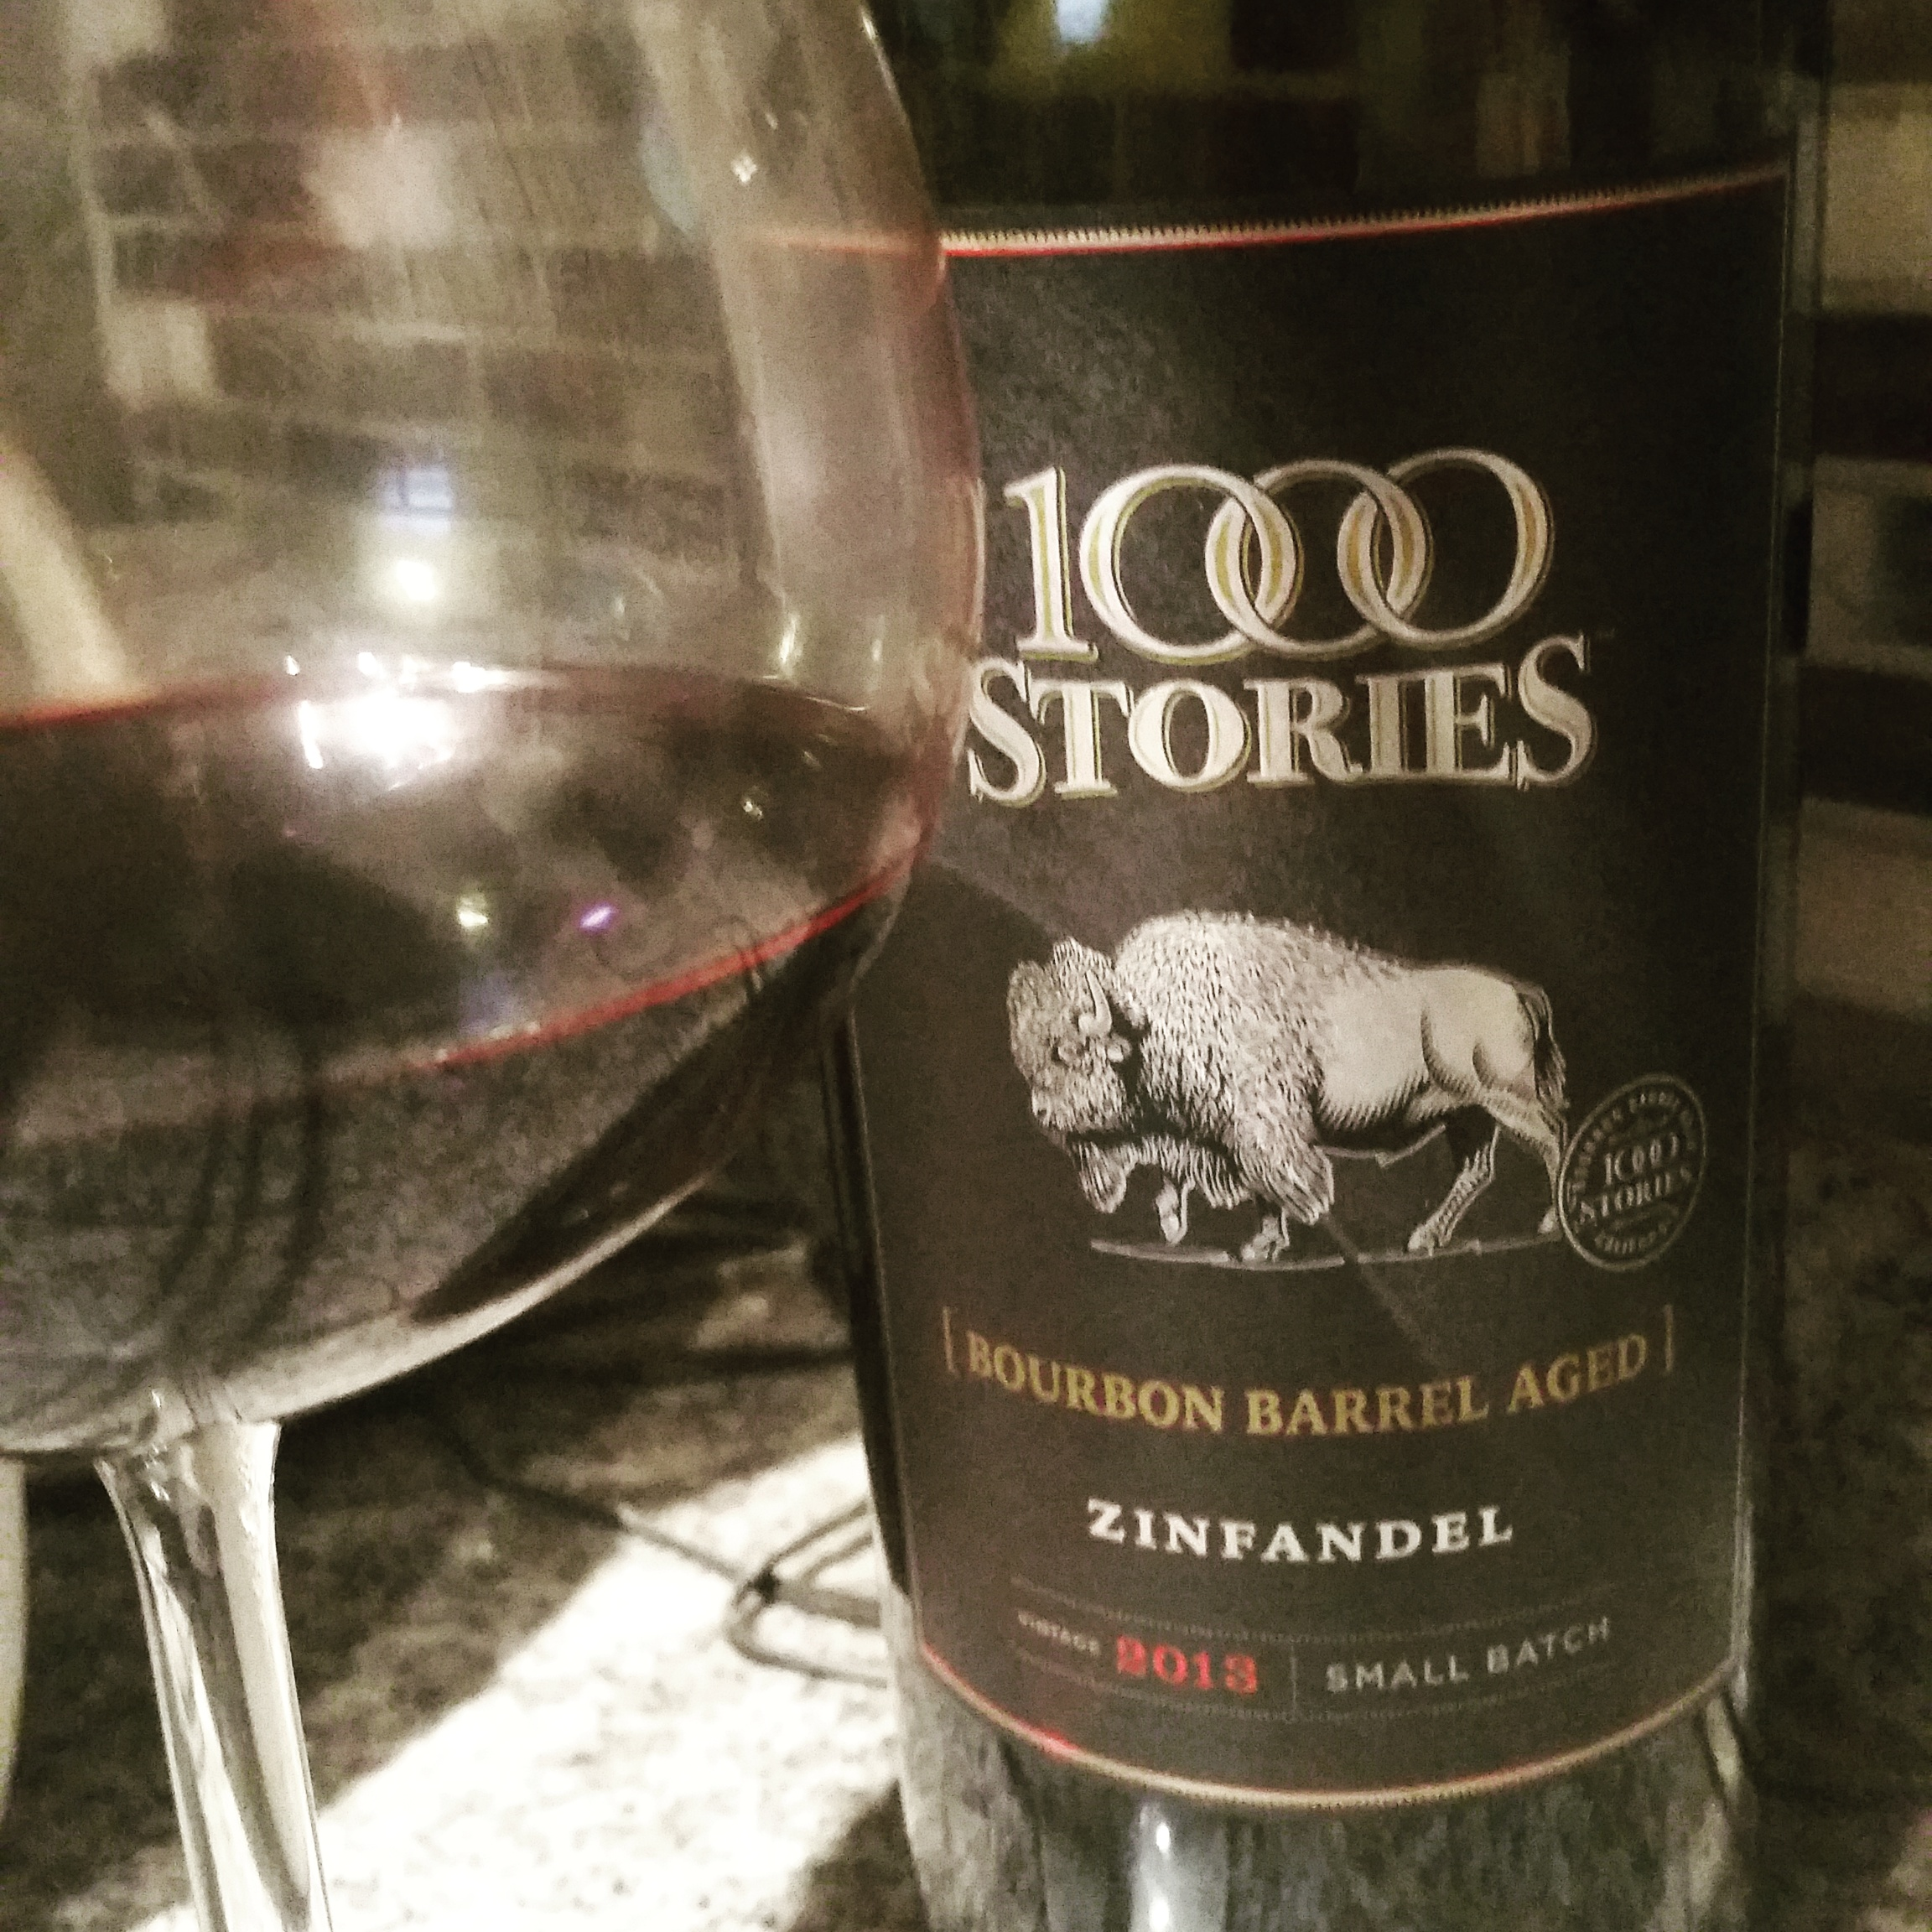 Tasting Notes: 1000 Stories Bourbon Barrel-Aged Zin